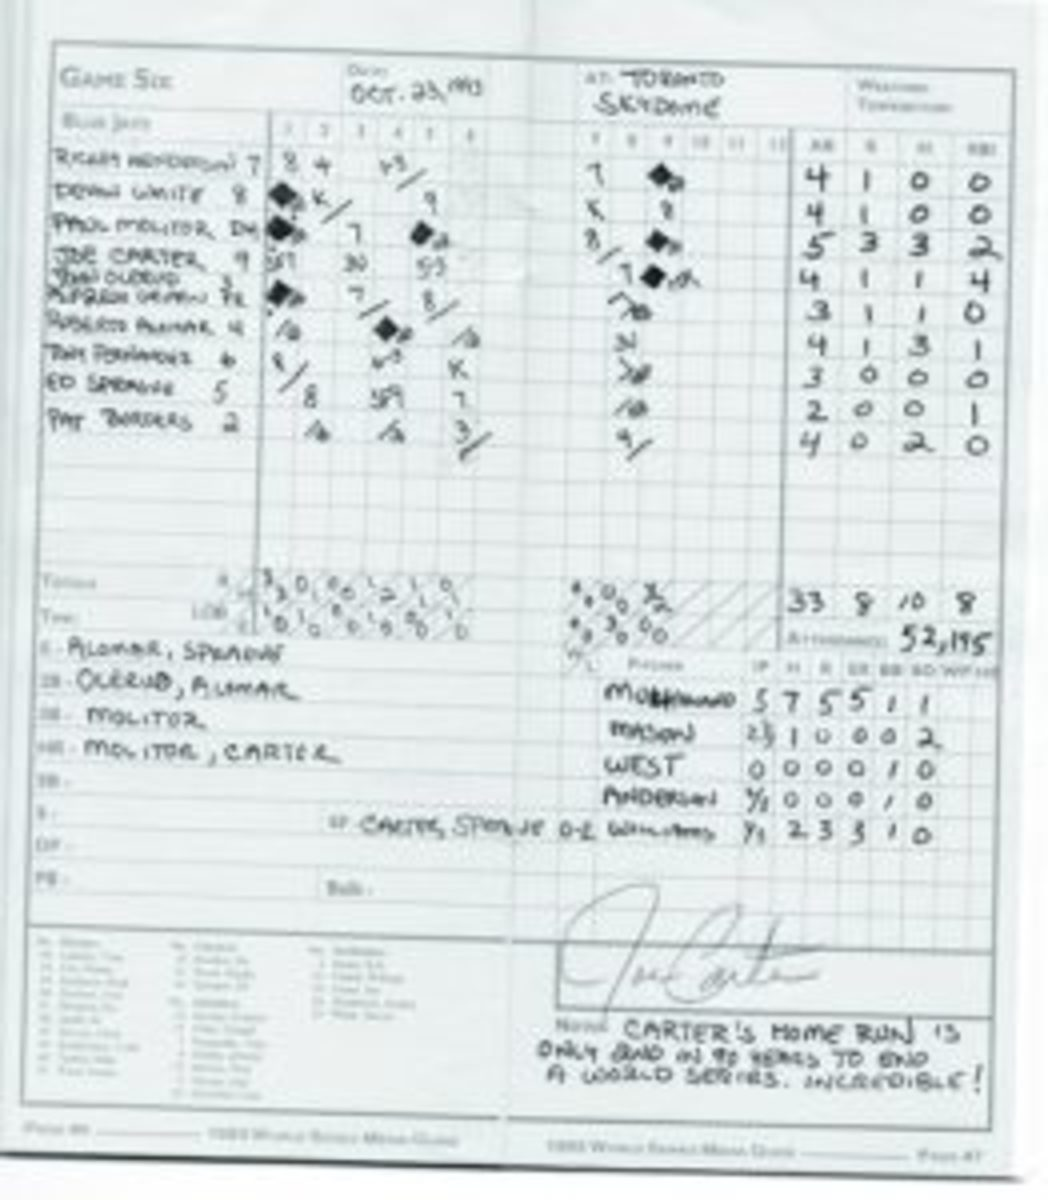 This scorecard from Game 6 of the 1993 World Series in which Joe Carter hit a walk-off home run to win the World Series for the Toronto Blue Jays is autographed by Carter.